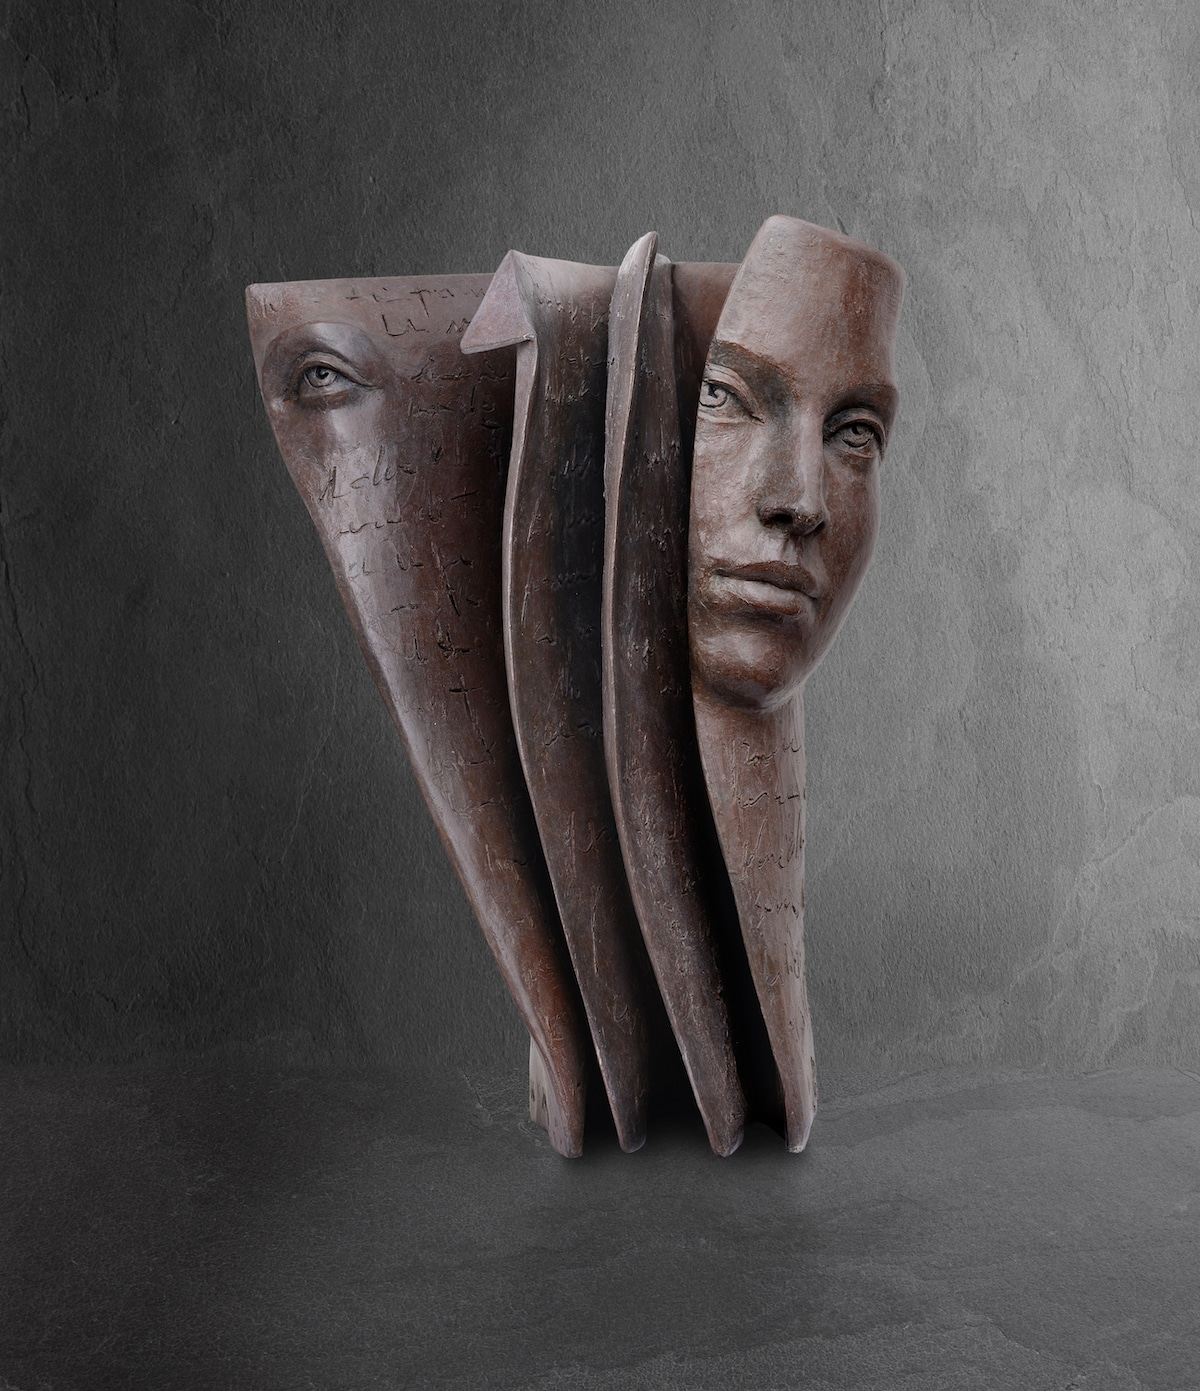 Face Emerging from Book by Sculptor Paola Grizi